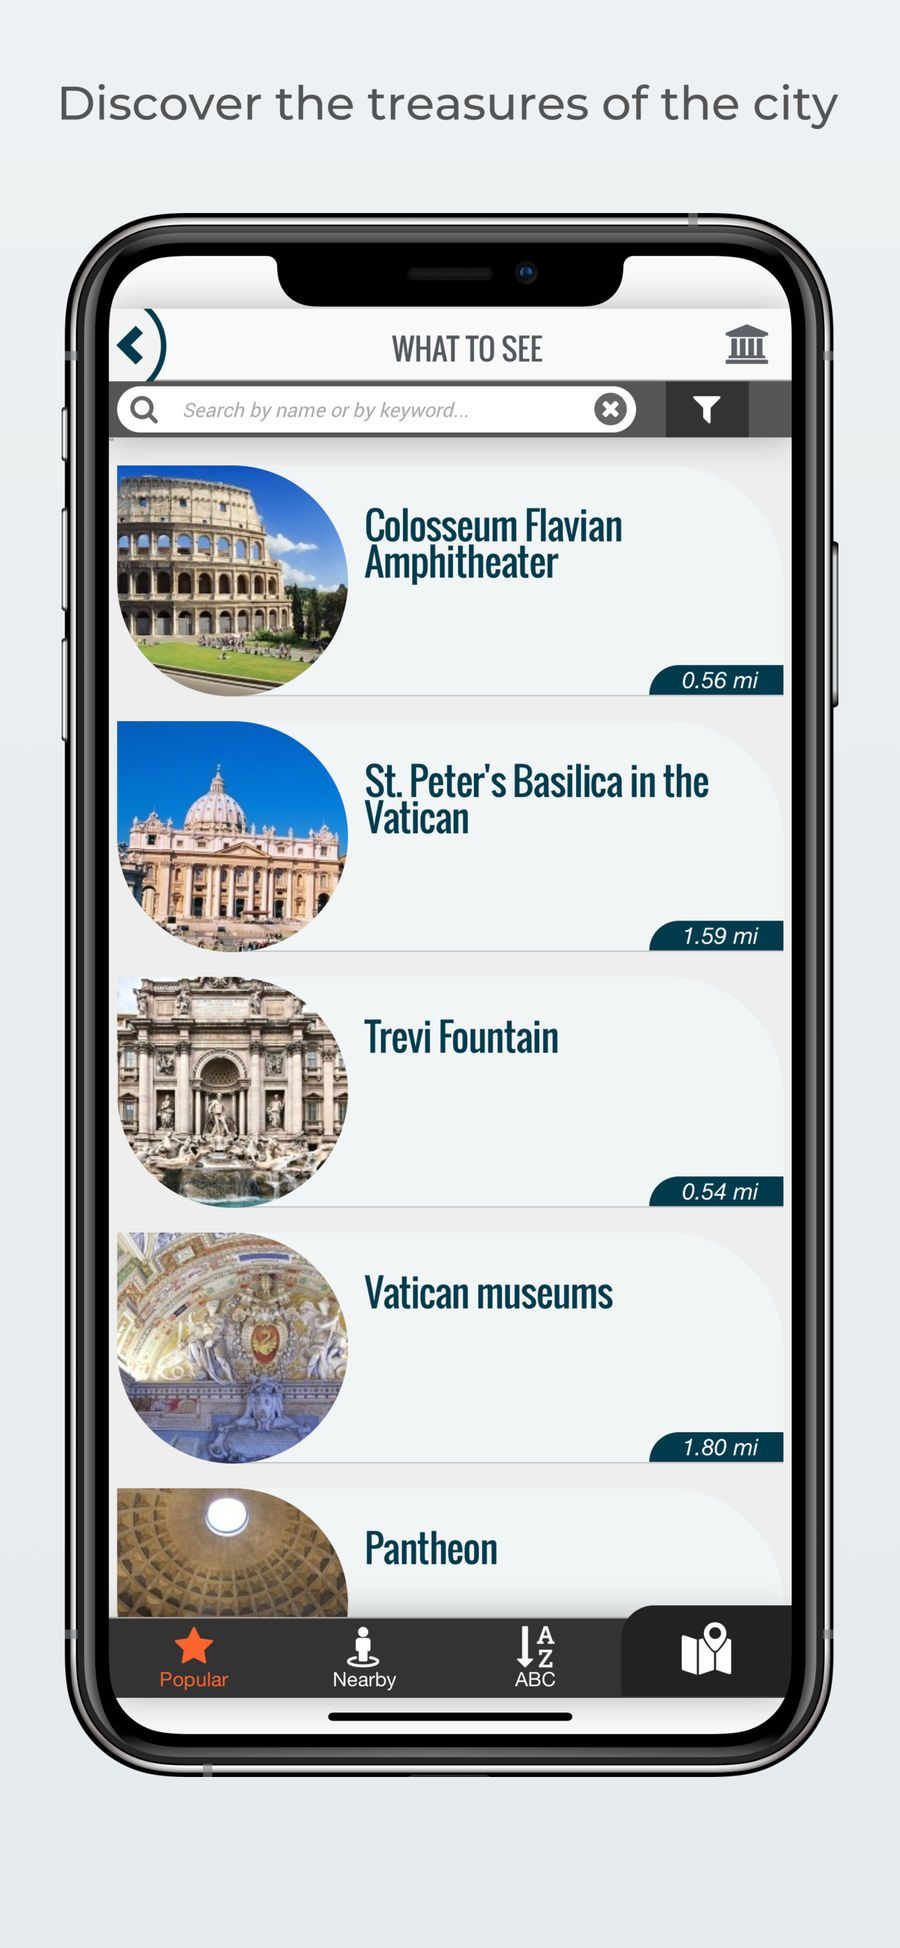 Rome City Guide And Tours On The App Store Rome City Guide City Guide Trevi Fountain